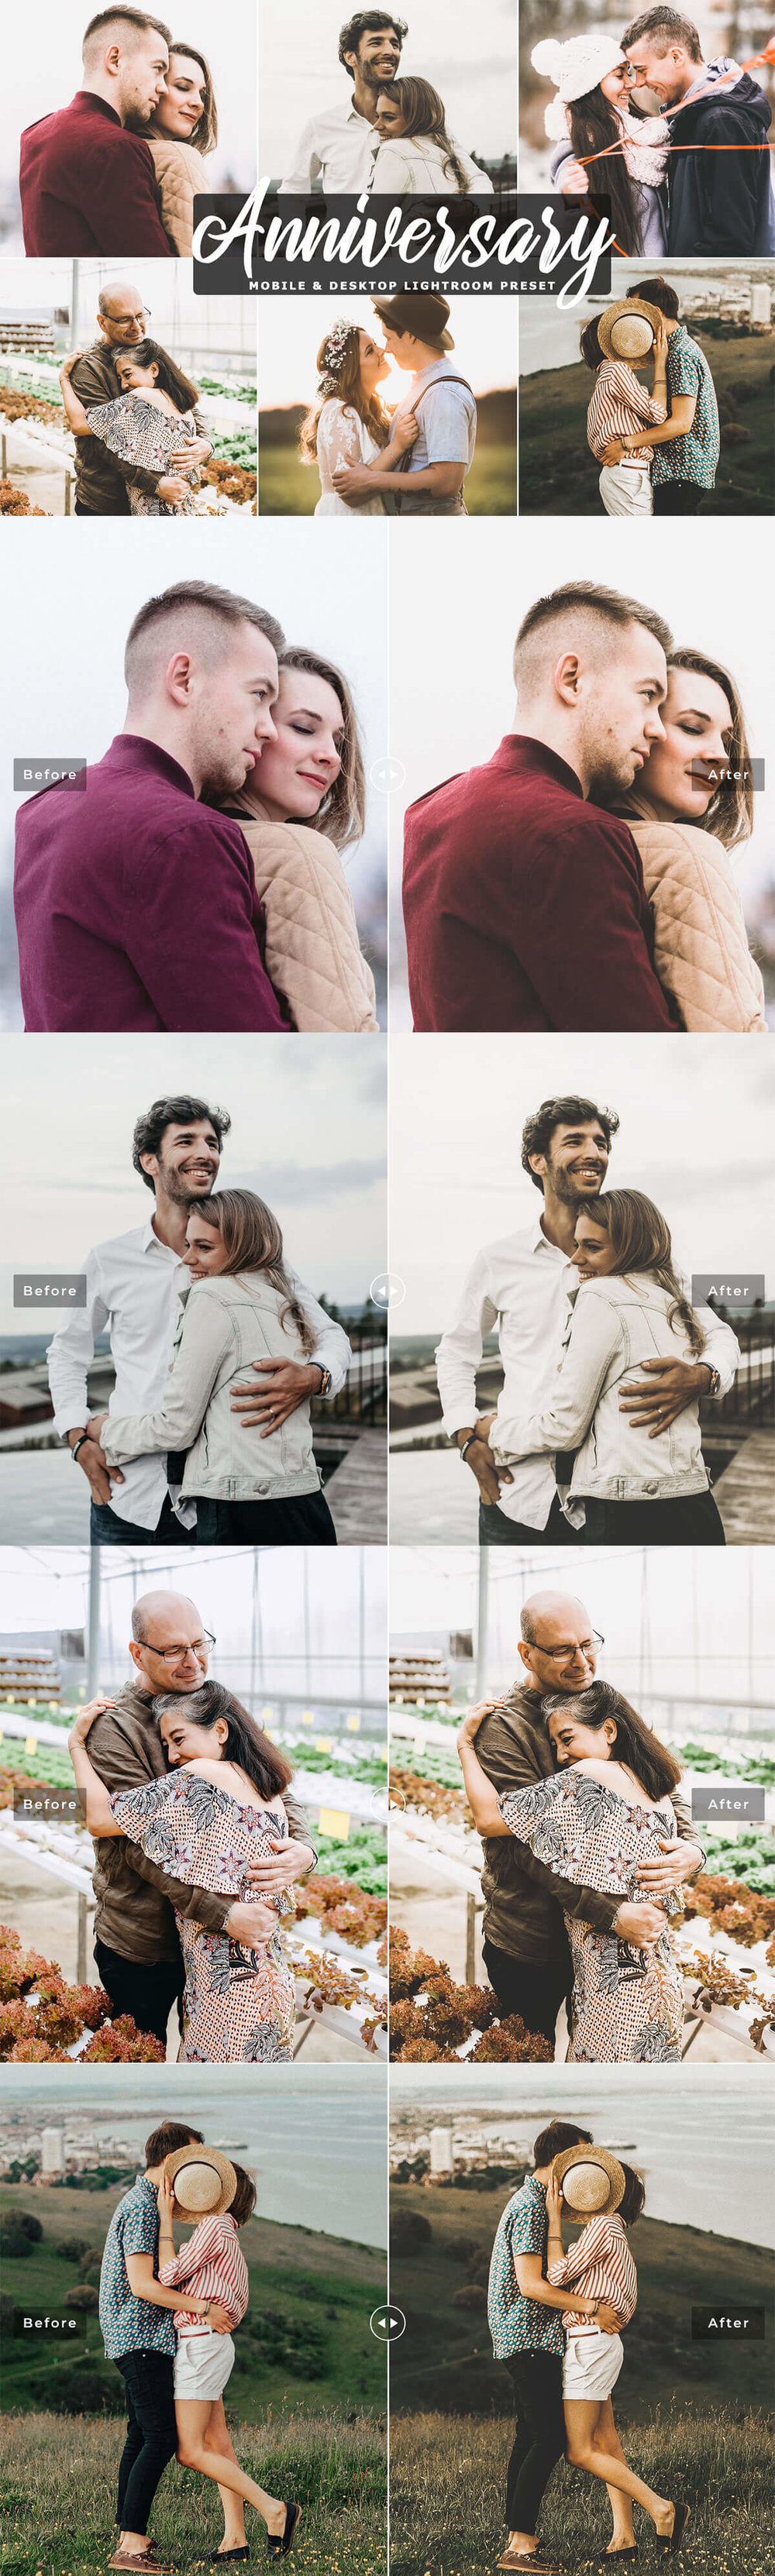 #Anniversary Mobile & Desktop Free #Lightroom #Preset comes in a single professional preset that will help you will create beautiful color tones and moody atmosphere in your photographs.